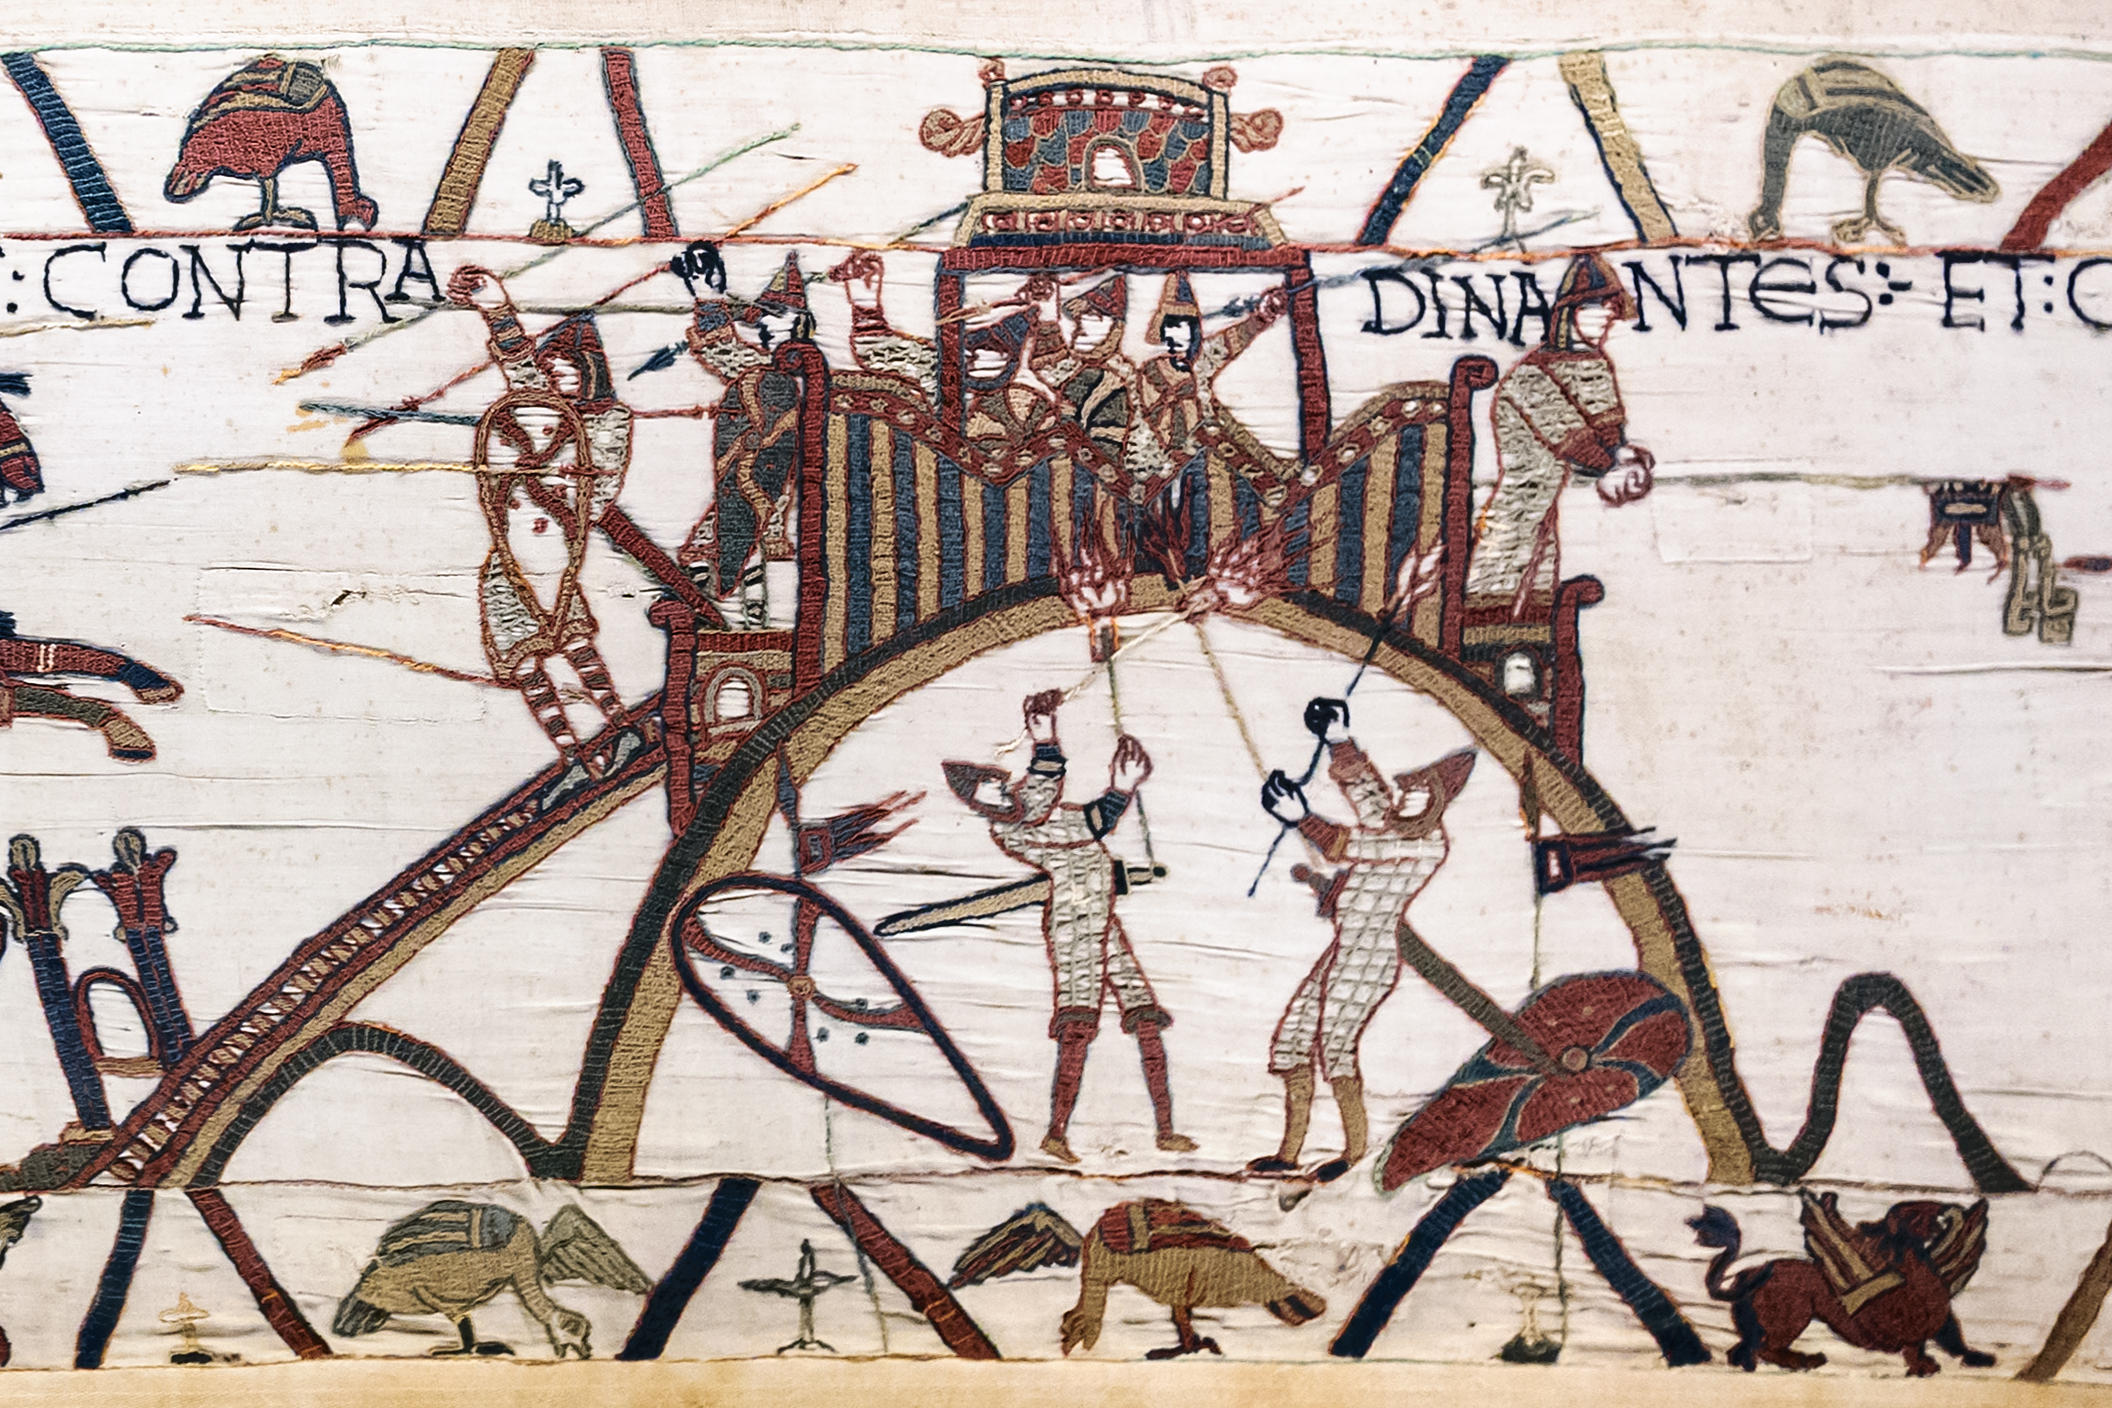 The first wooden fortifications: fortified mound of Dinan (Brittany), from the Bayeux Tapestry.